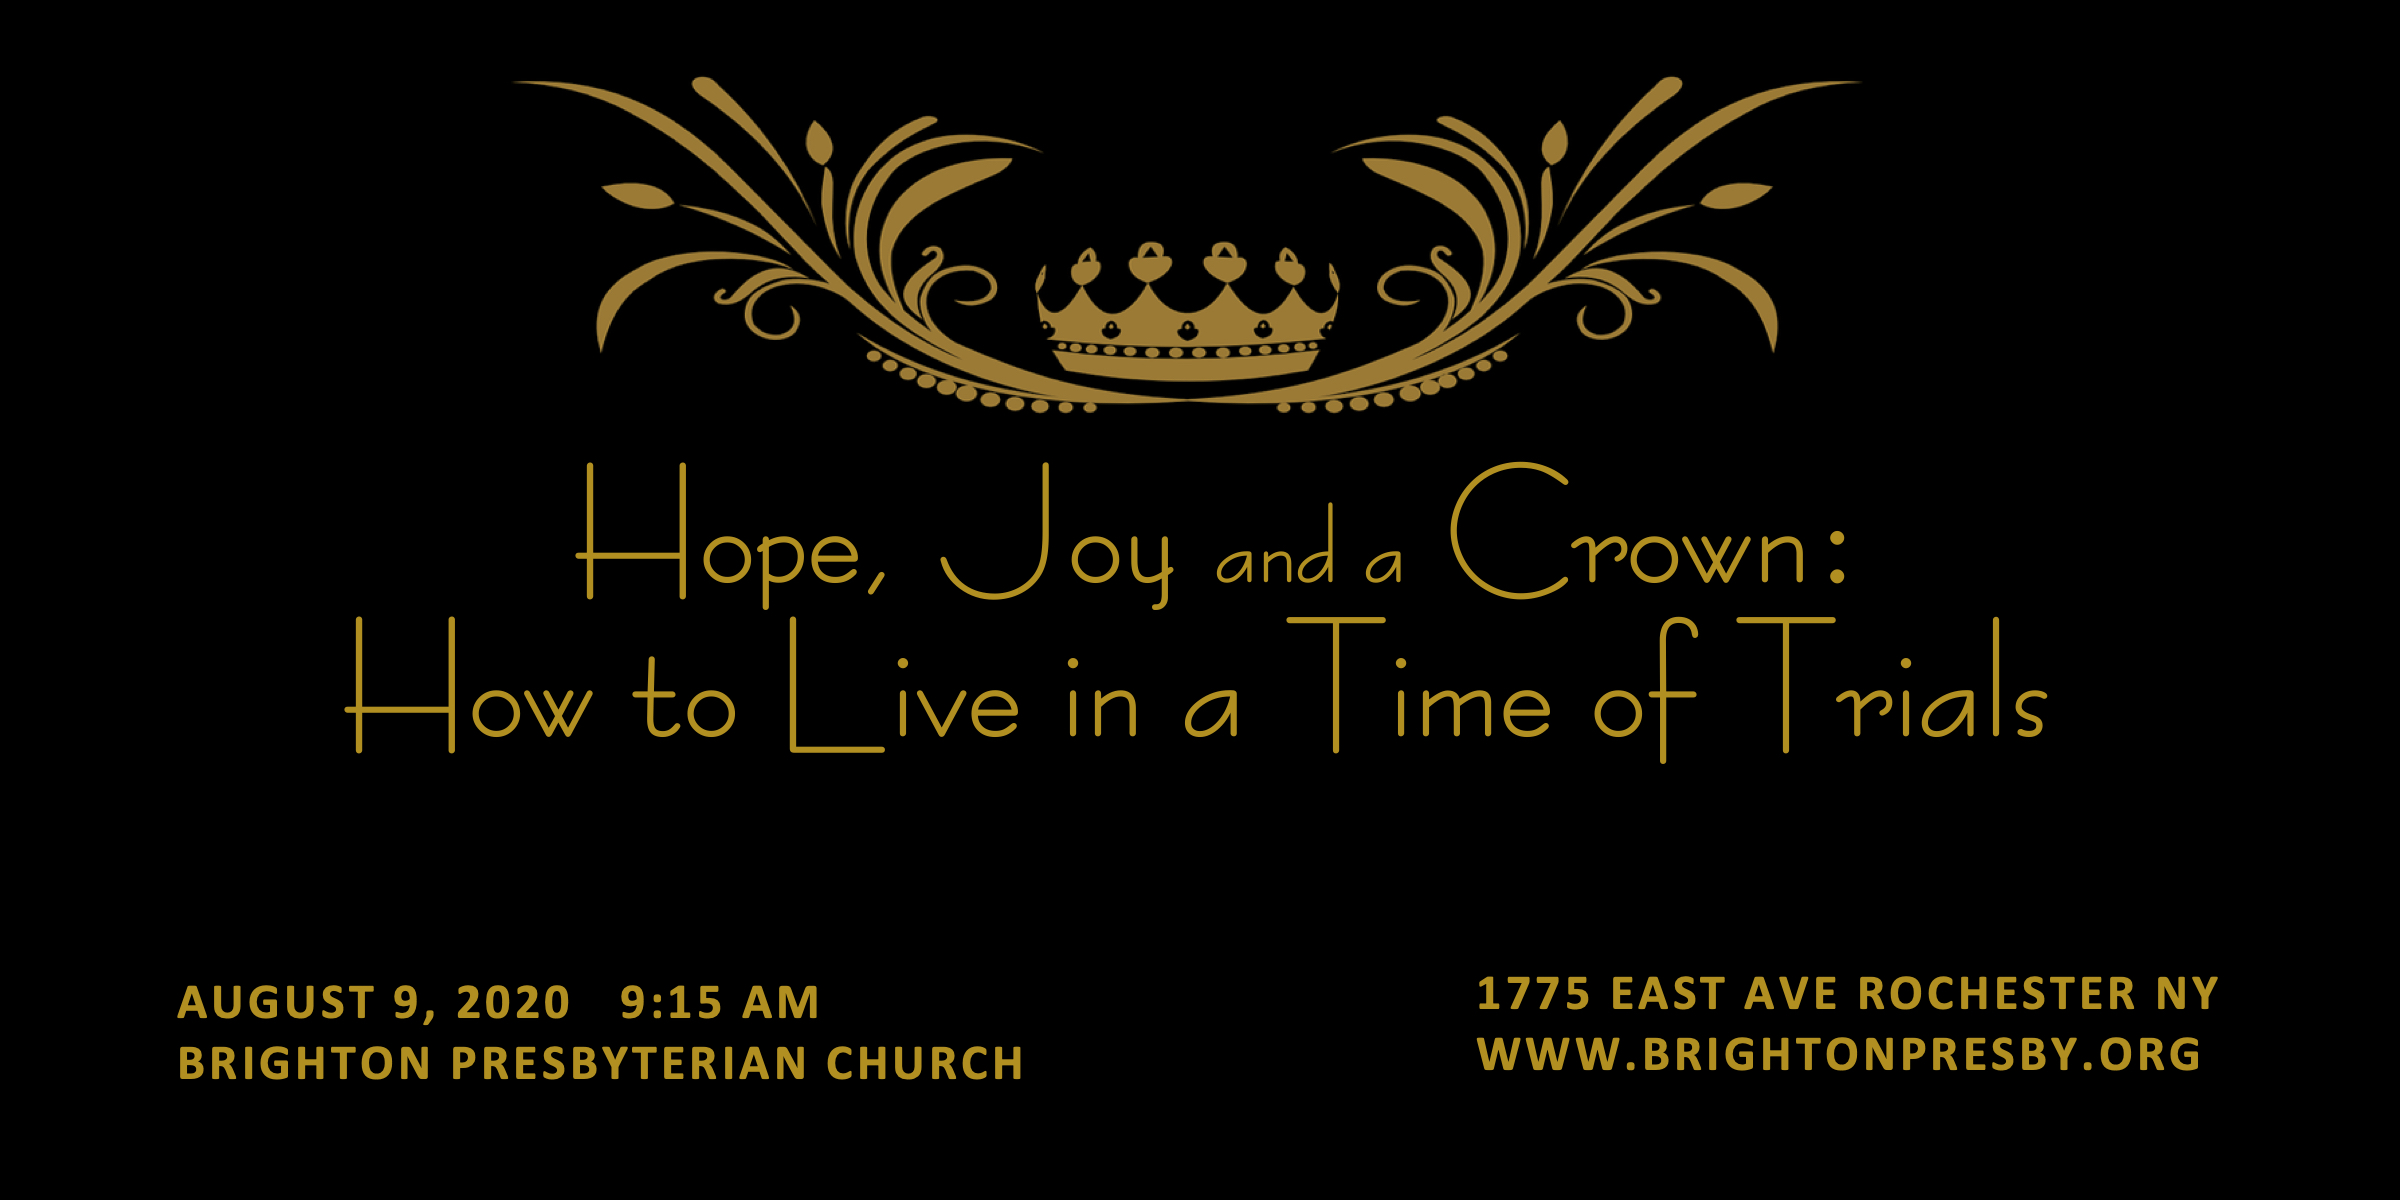 Hope, Joy and a Crown: How to Live in a Time of Trials (Part 4 of 1 Thess. Series)